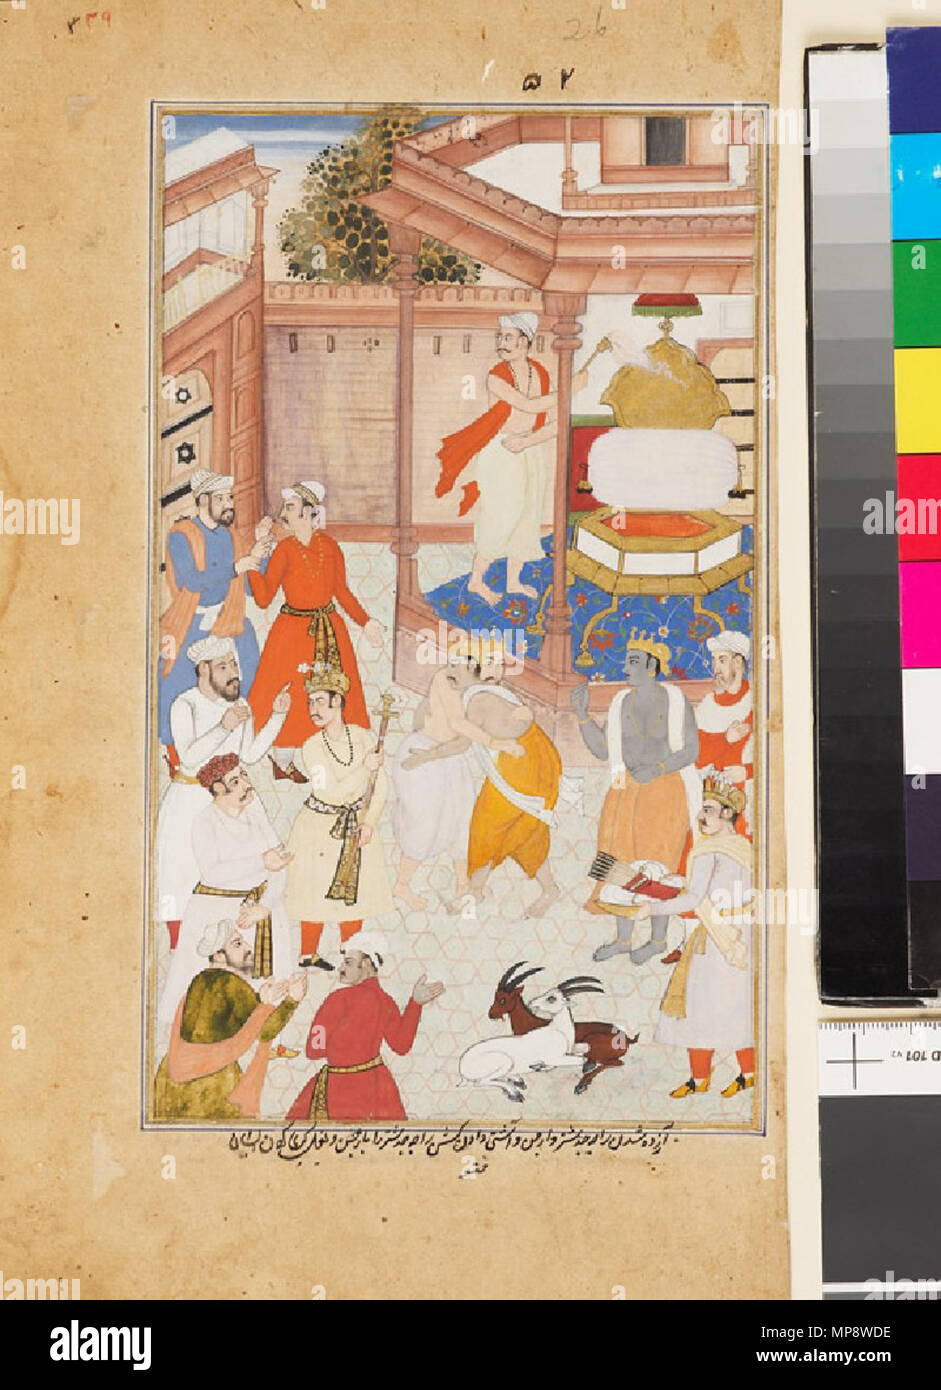 . English: Associated place  north India   (place of creation) Date  1598  Mughal Period (1526 - 1858)  Artist/maker  Fattu (active c. 1598) Associated people  probably 'Abd ur-Rahim Khankhanan (1556 - 1626) (commissioner) Material and technique  gouache with gold on paper Dimensions  mount 40.2 x 27.6 cm (height x width)  page 30.5 x 17 cm (height x width)  painting with border 22 x 13.4 cm (height x width)  painting without border 21.5 x 12.6 cm (height x width)  Material index  paper,  gold  Technique index  painted,  painted,  painted,  painted    Object type index  manuscript    No. of it - Stock Image